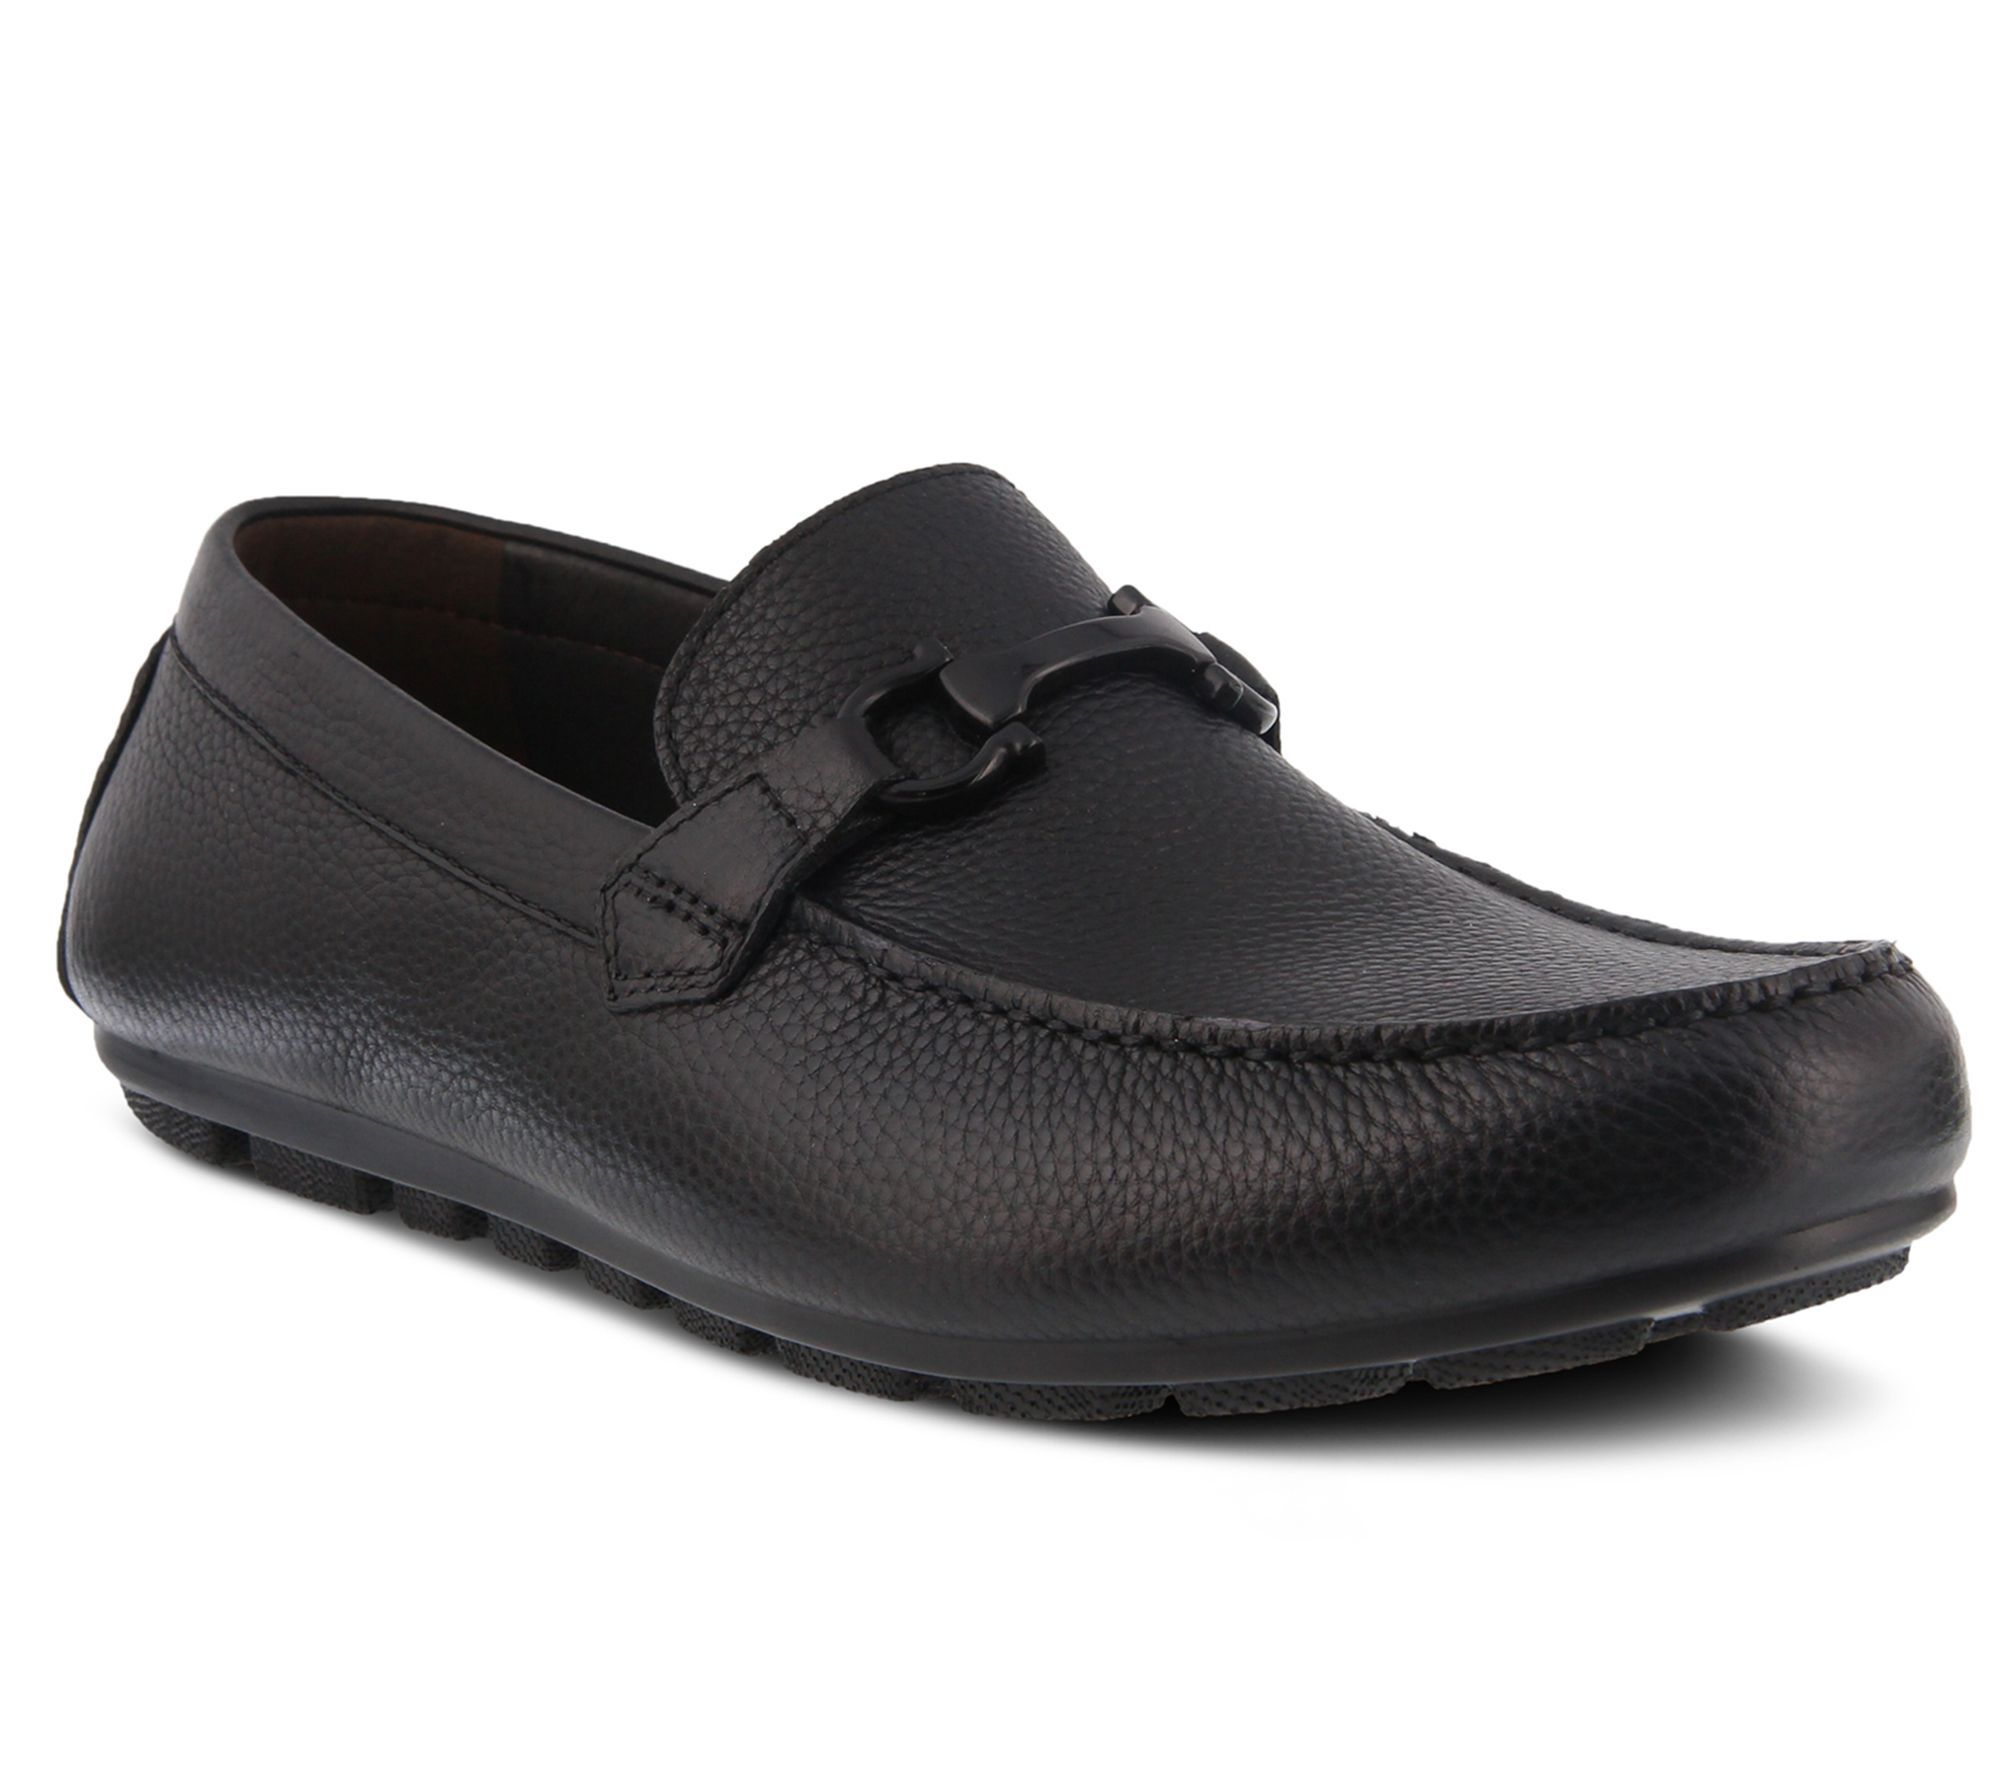 SPRING STEP CETO Shoes BLACK New